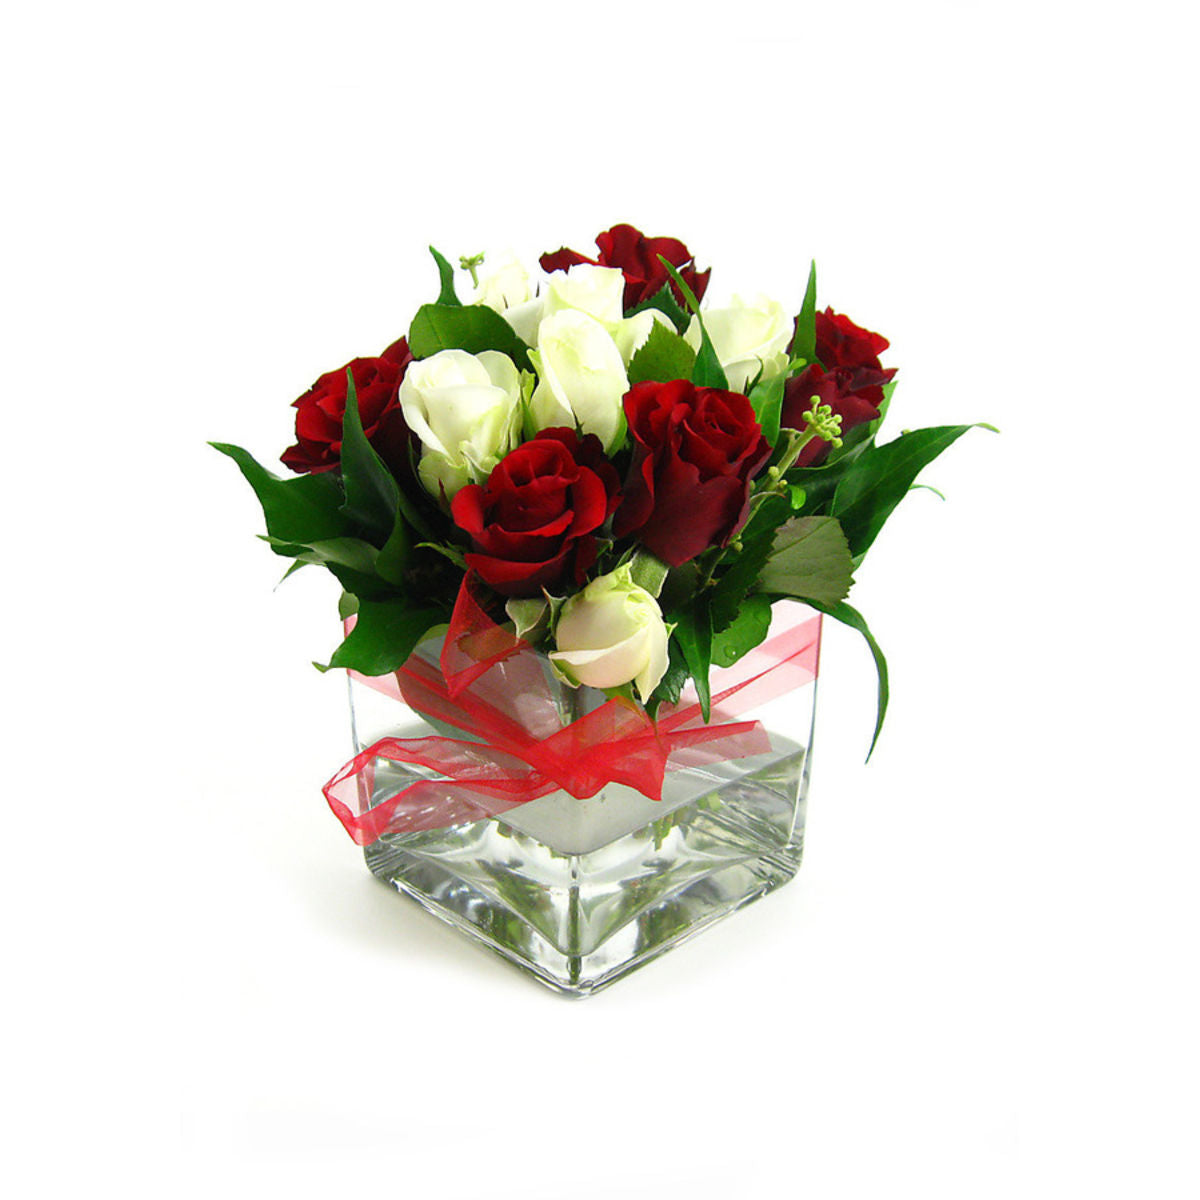 Red & White Rose Vase - Arabian Petals